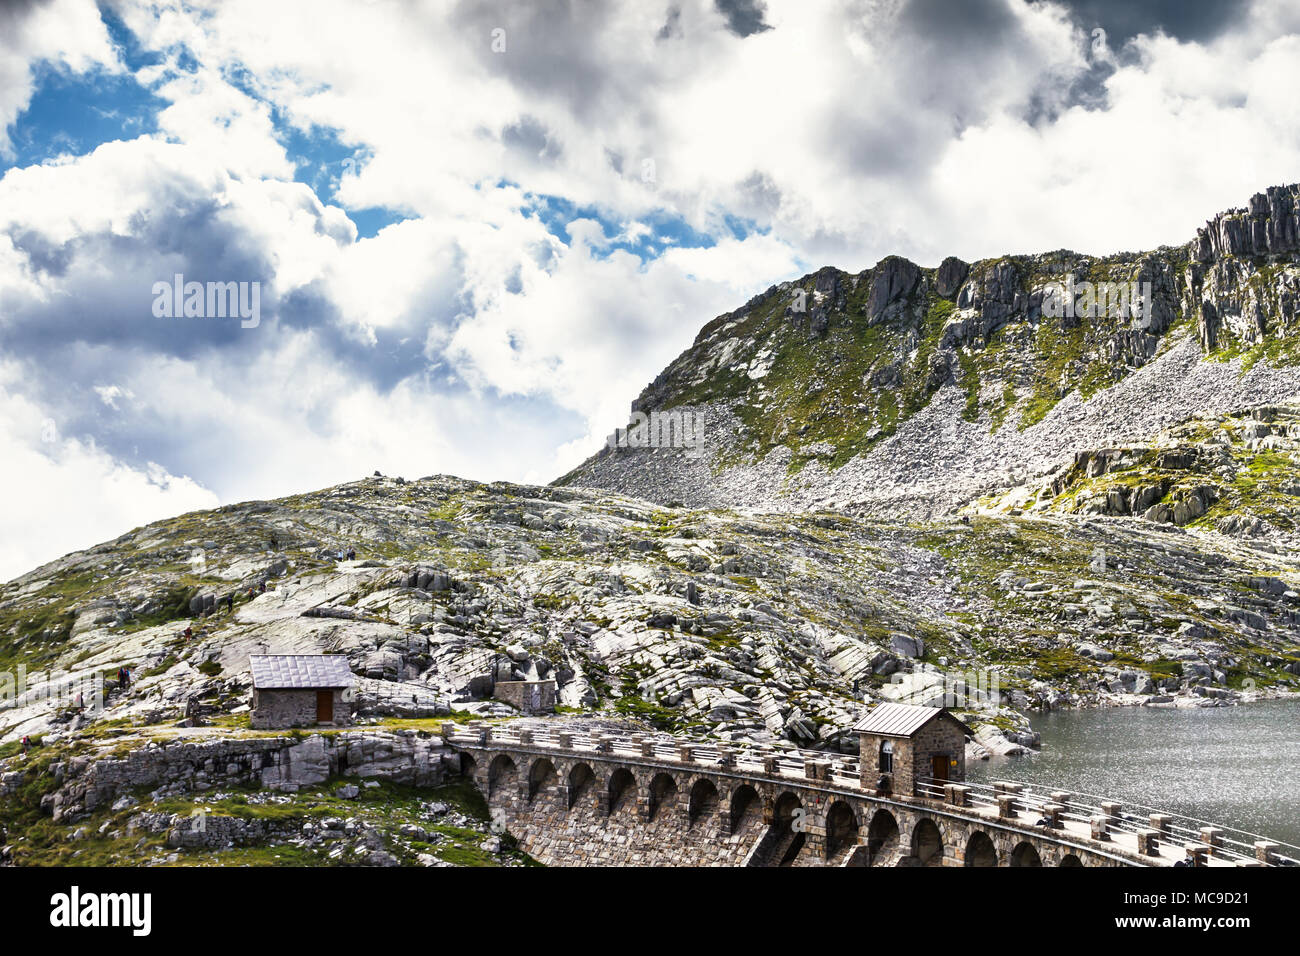 The dam of the lake of vaca. Pass of the cow from Tito Secchi refuge in Valsabbia, Brescia, Italy. - Stock Image